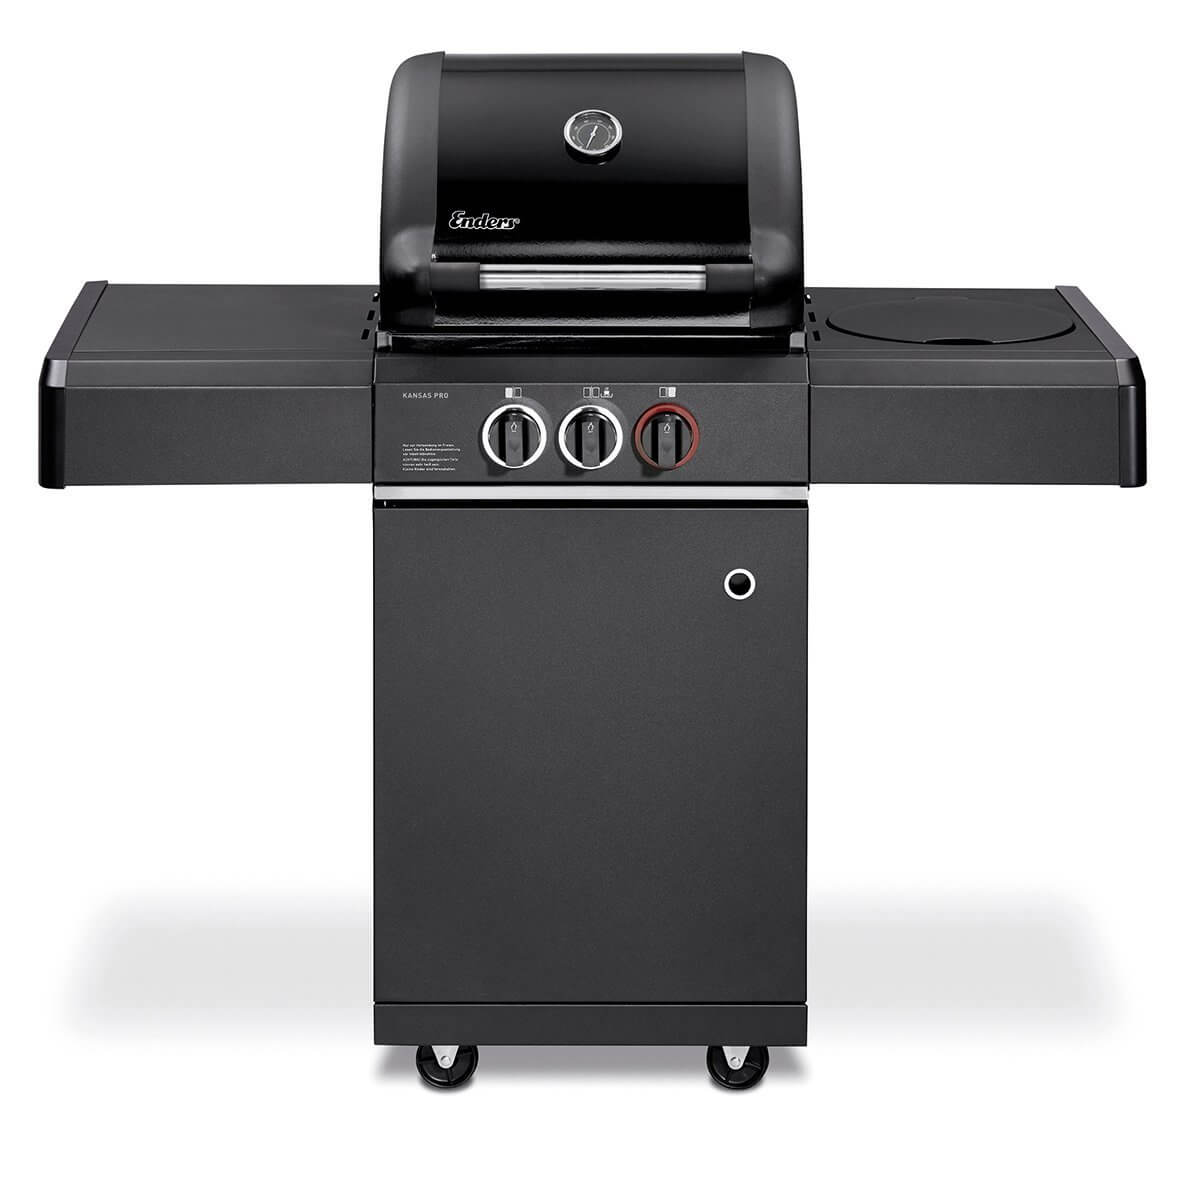 enders kansas black pro 2 k turbo - bester gasgrill